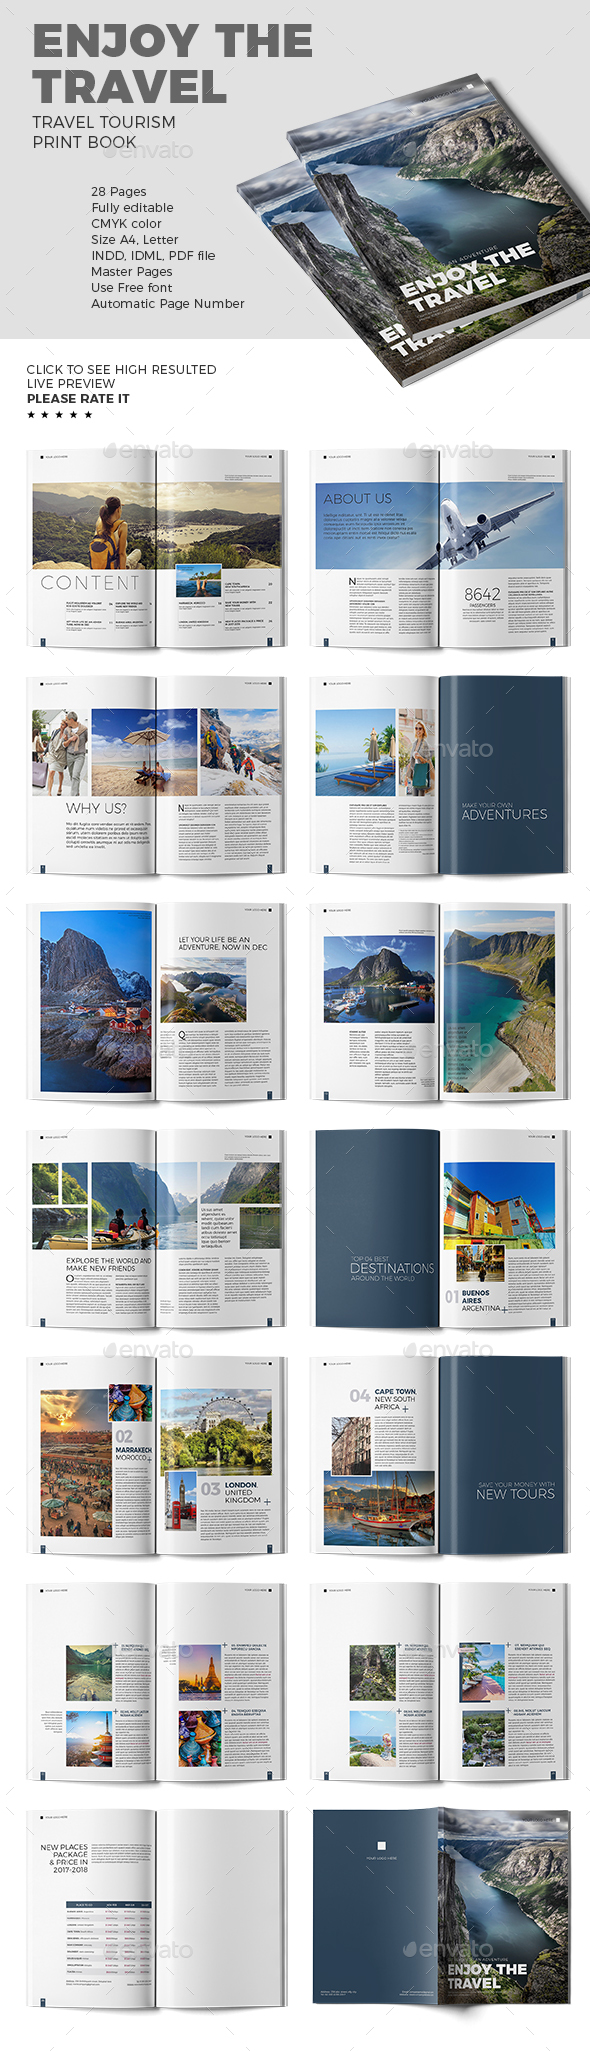 Enjoy The Travel - Travel Book Template - Print Templates